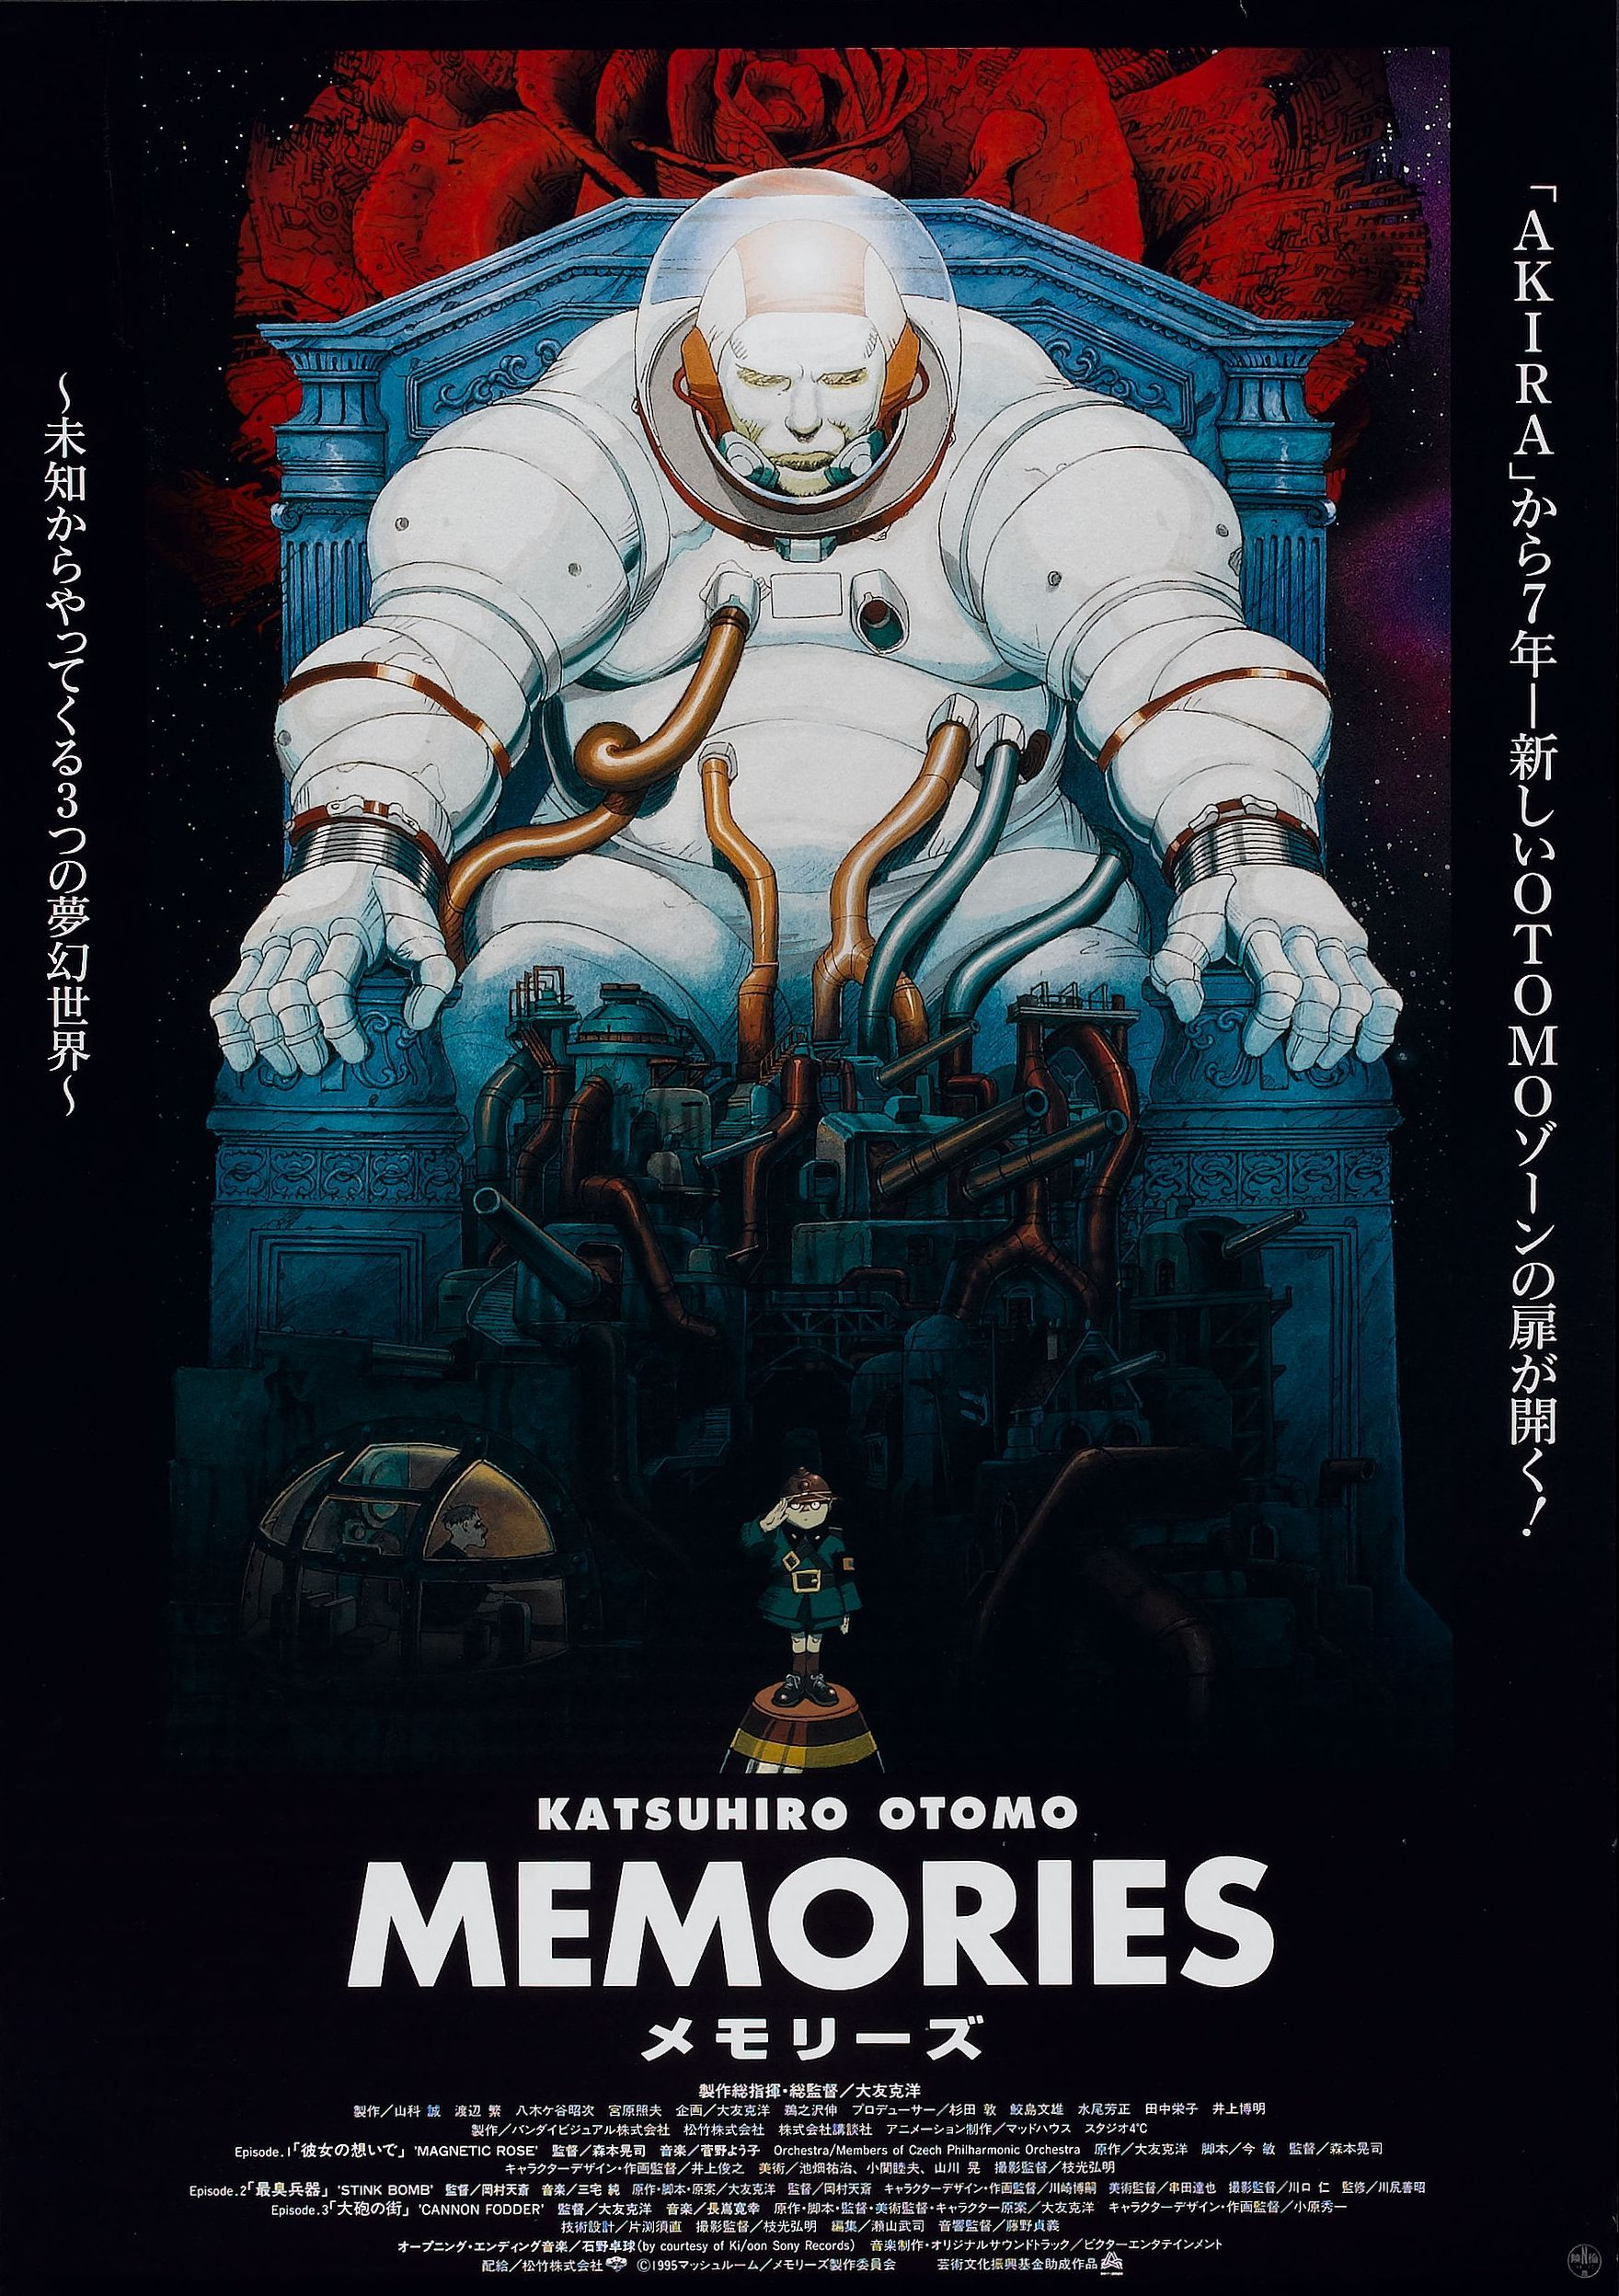 memories Anime posters HD Wallpaper